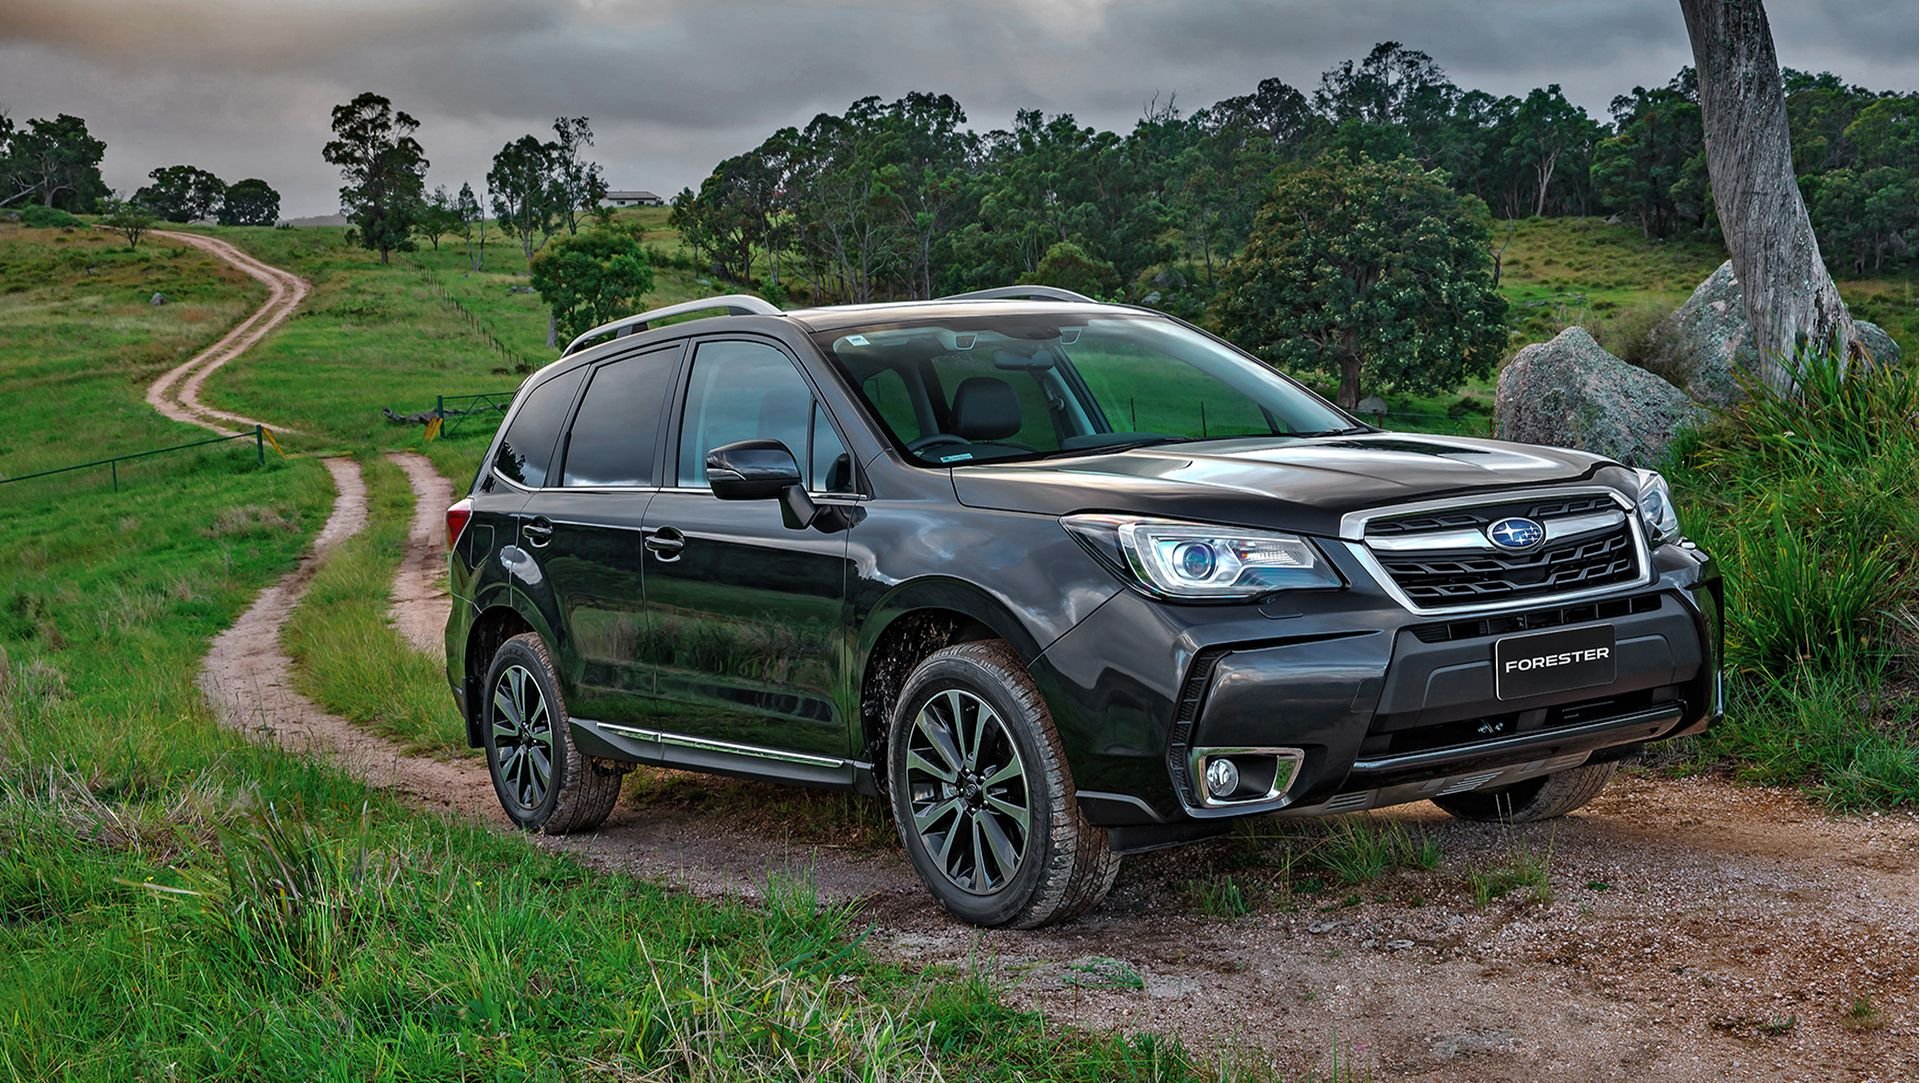 The 2016 subaru forester update brings a significant revision to the car s suspension setup as